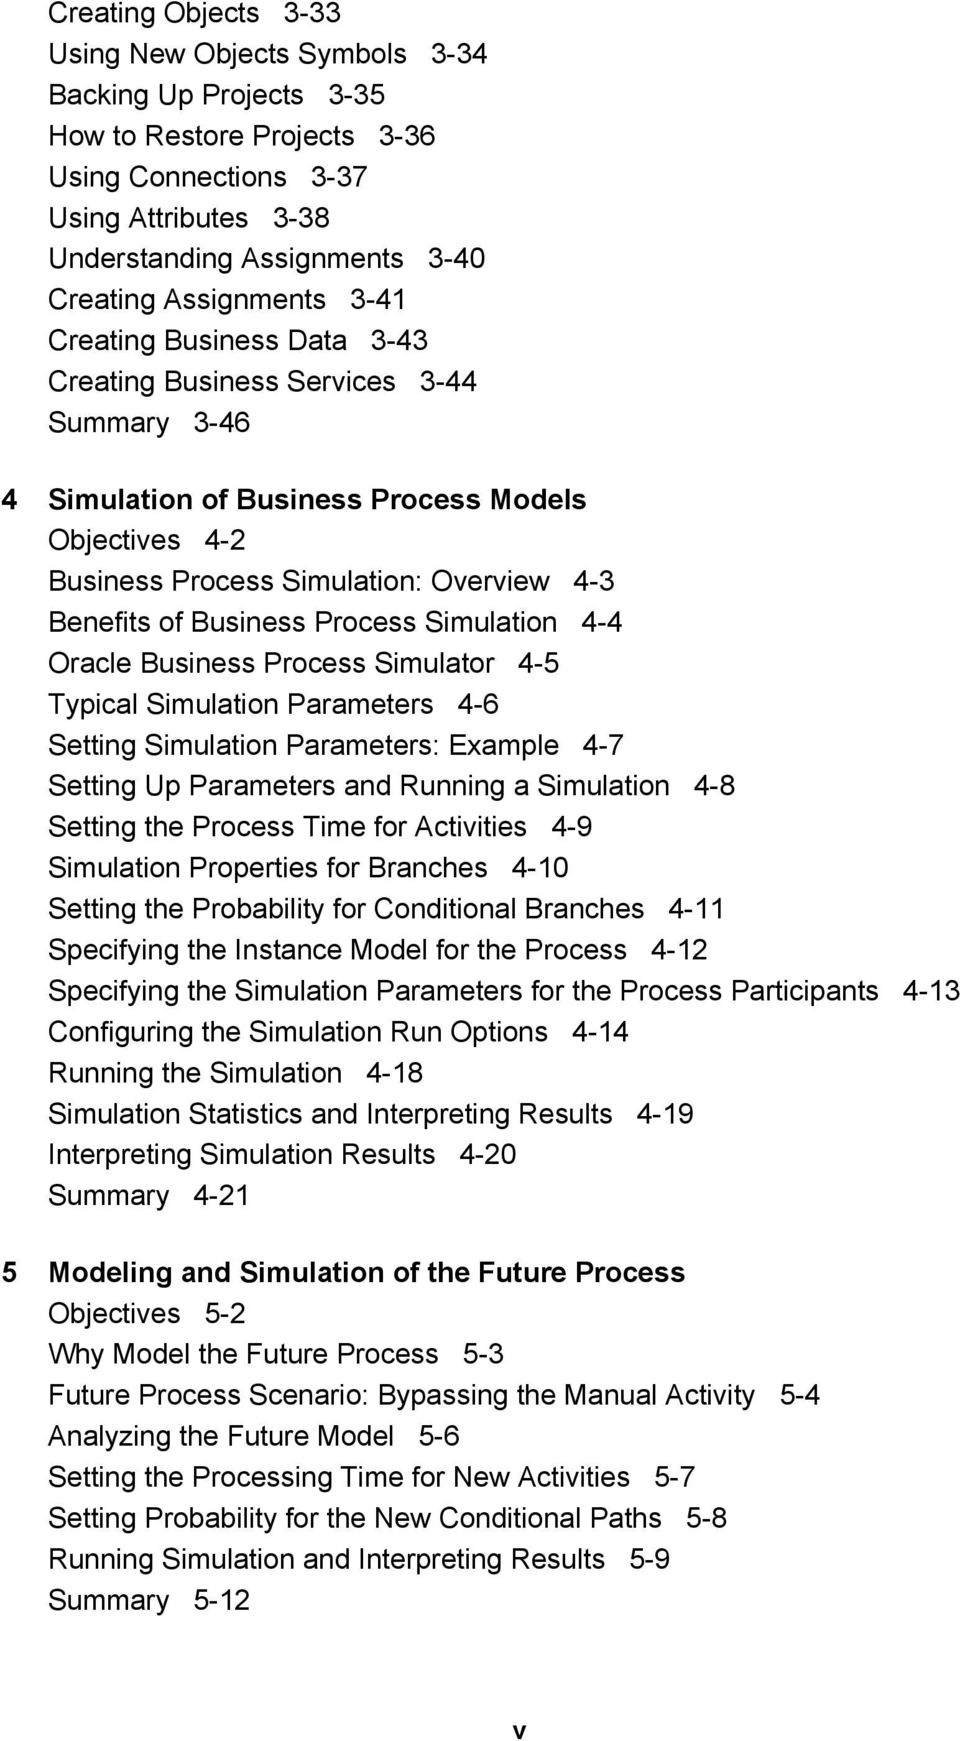 Business Process Simulation 4-4 Oracle Business Process Simulator 4-5 Typical Simulation Parameters 4-6 Setting Simulation Parameters: Example 4-7 Setting Up Parameters and Running a Simulation 4-8